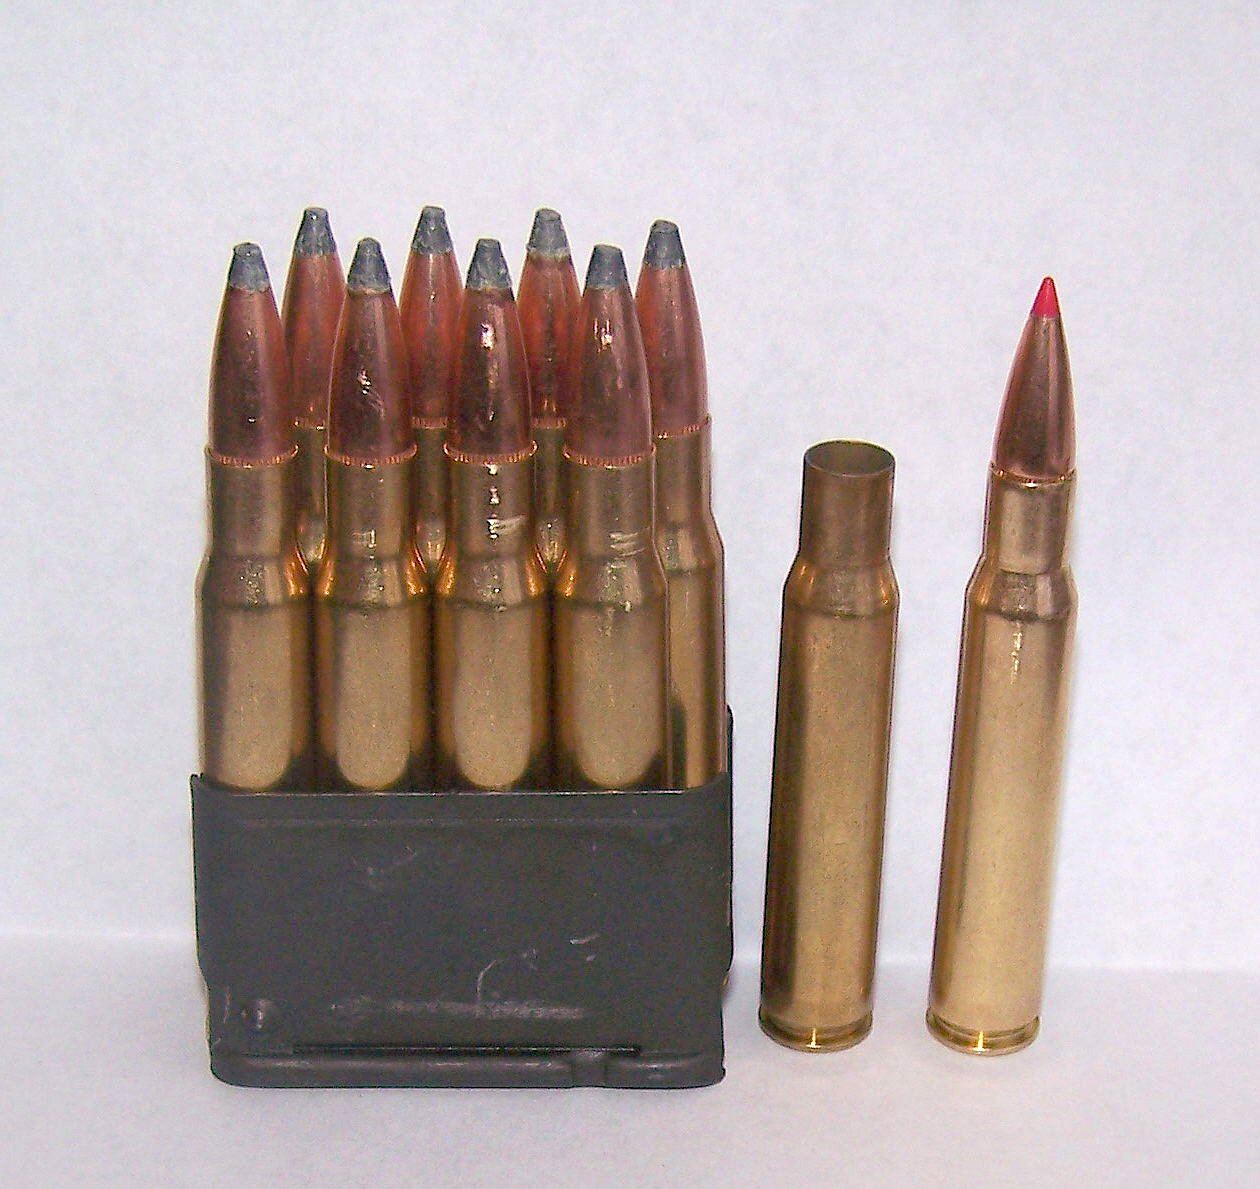 Magazine loaded with .308 Winchester ammunition